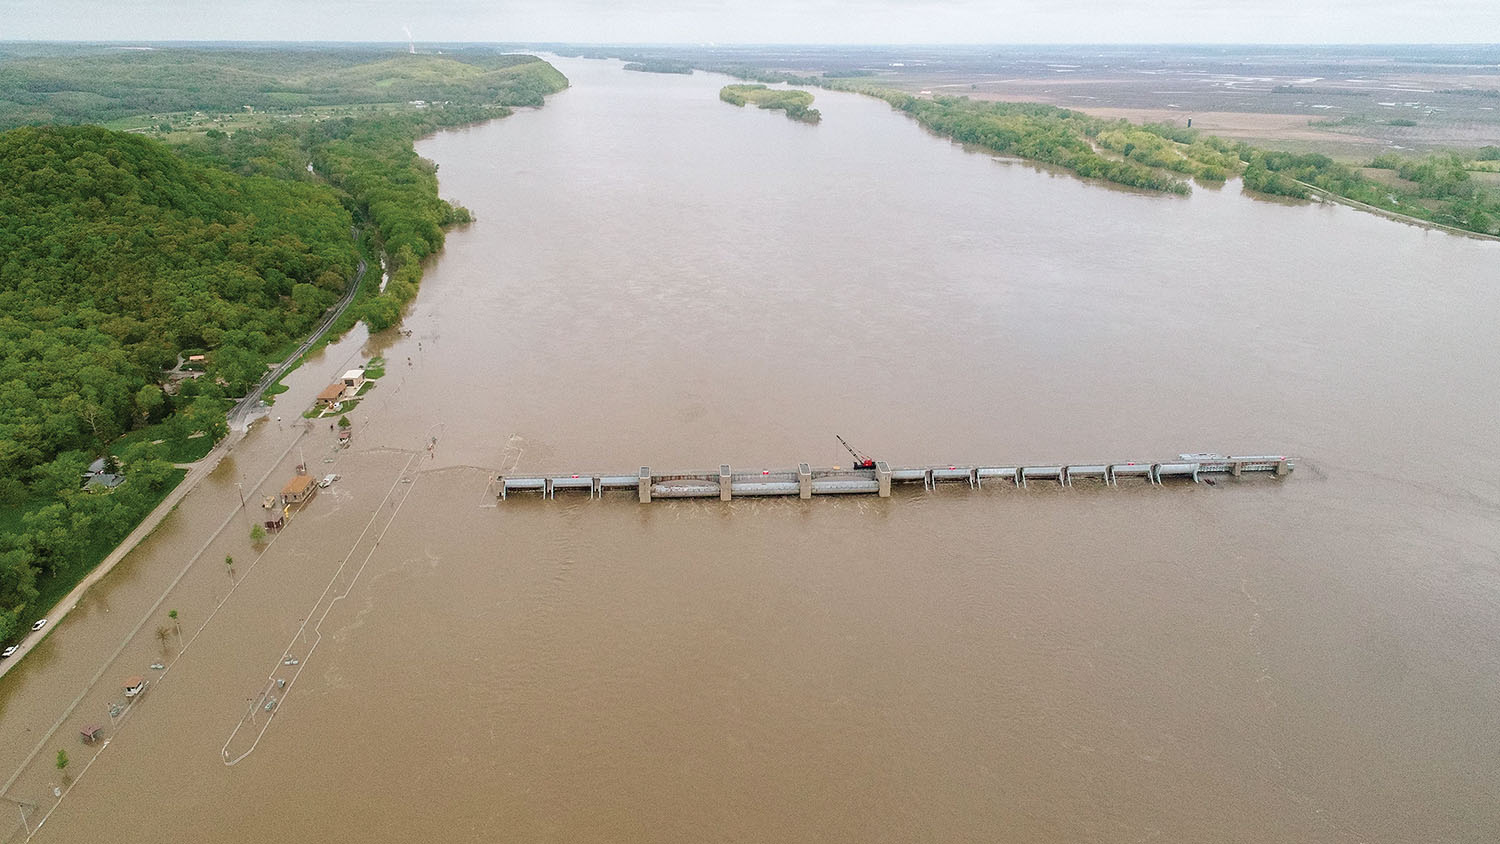 Only the outlines of the lock walls can be seen as Upper Mississippi River Lock and Dam 22 is swamped by floodwater. (Photo courtesy of U.S. Army Corps of Engineers, Rock Island District)